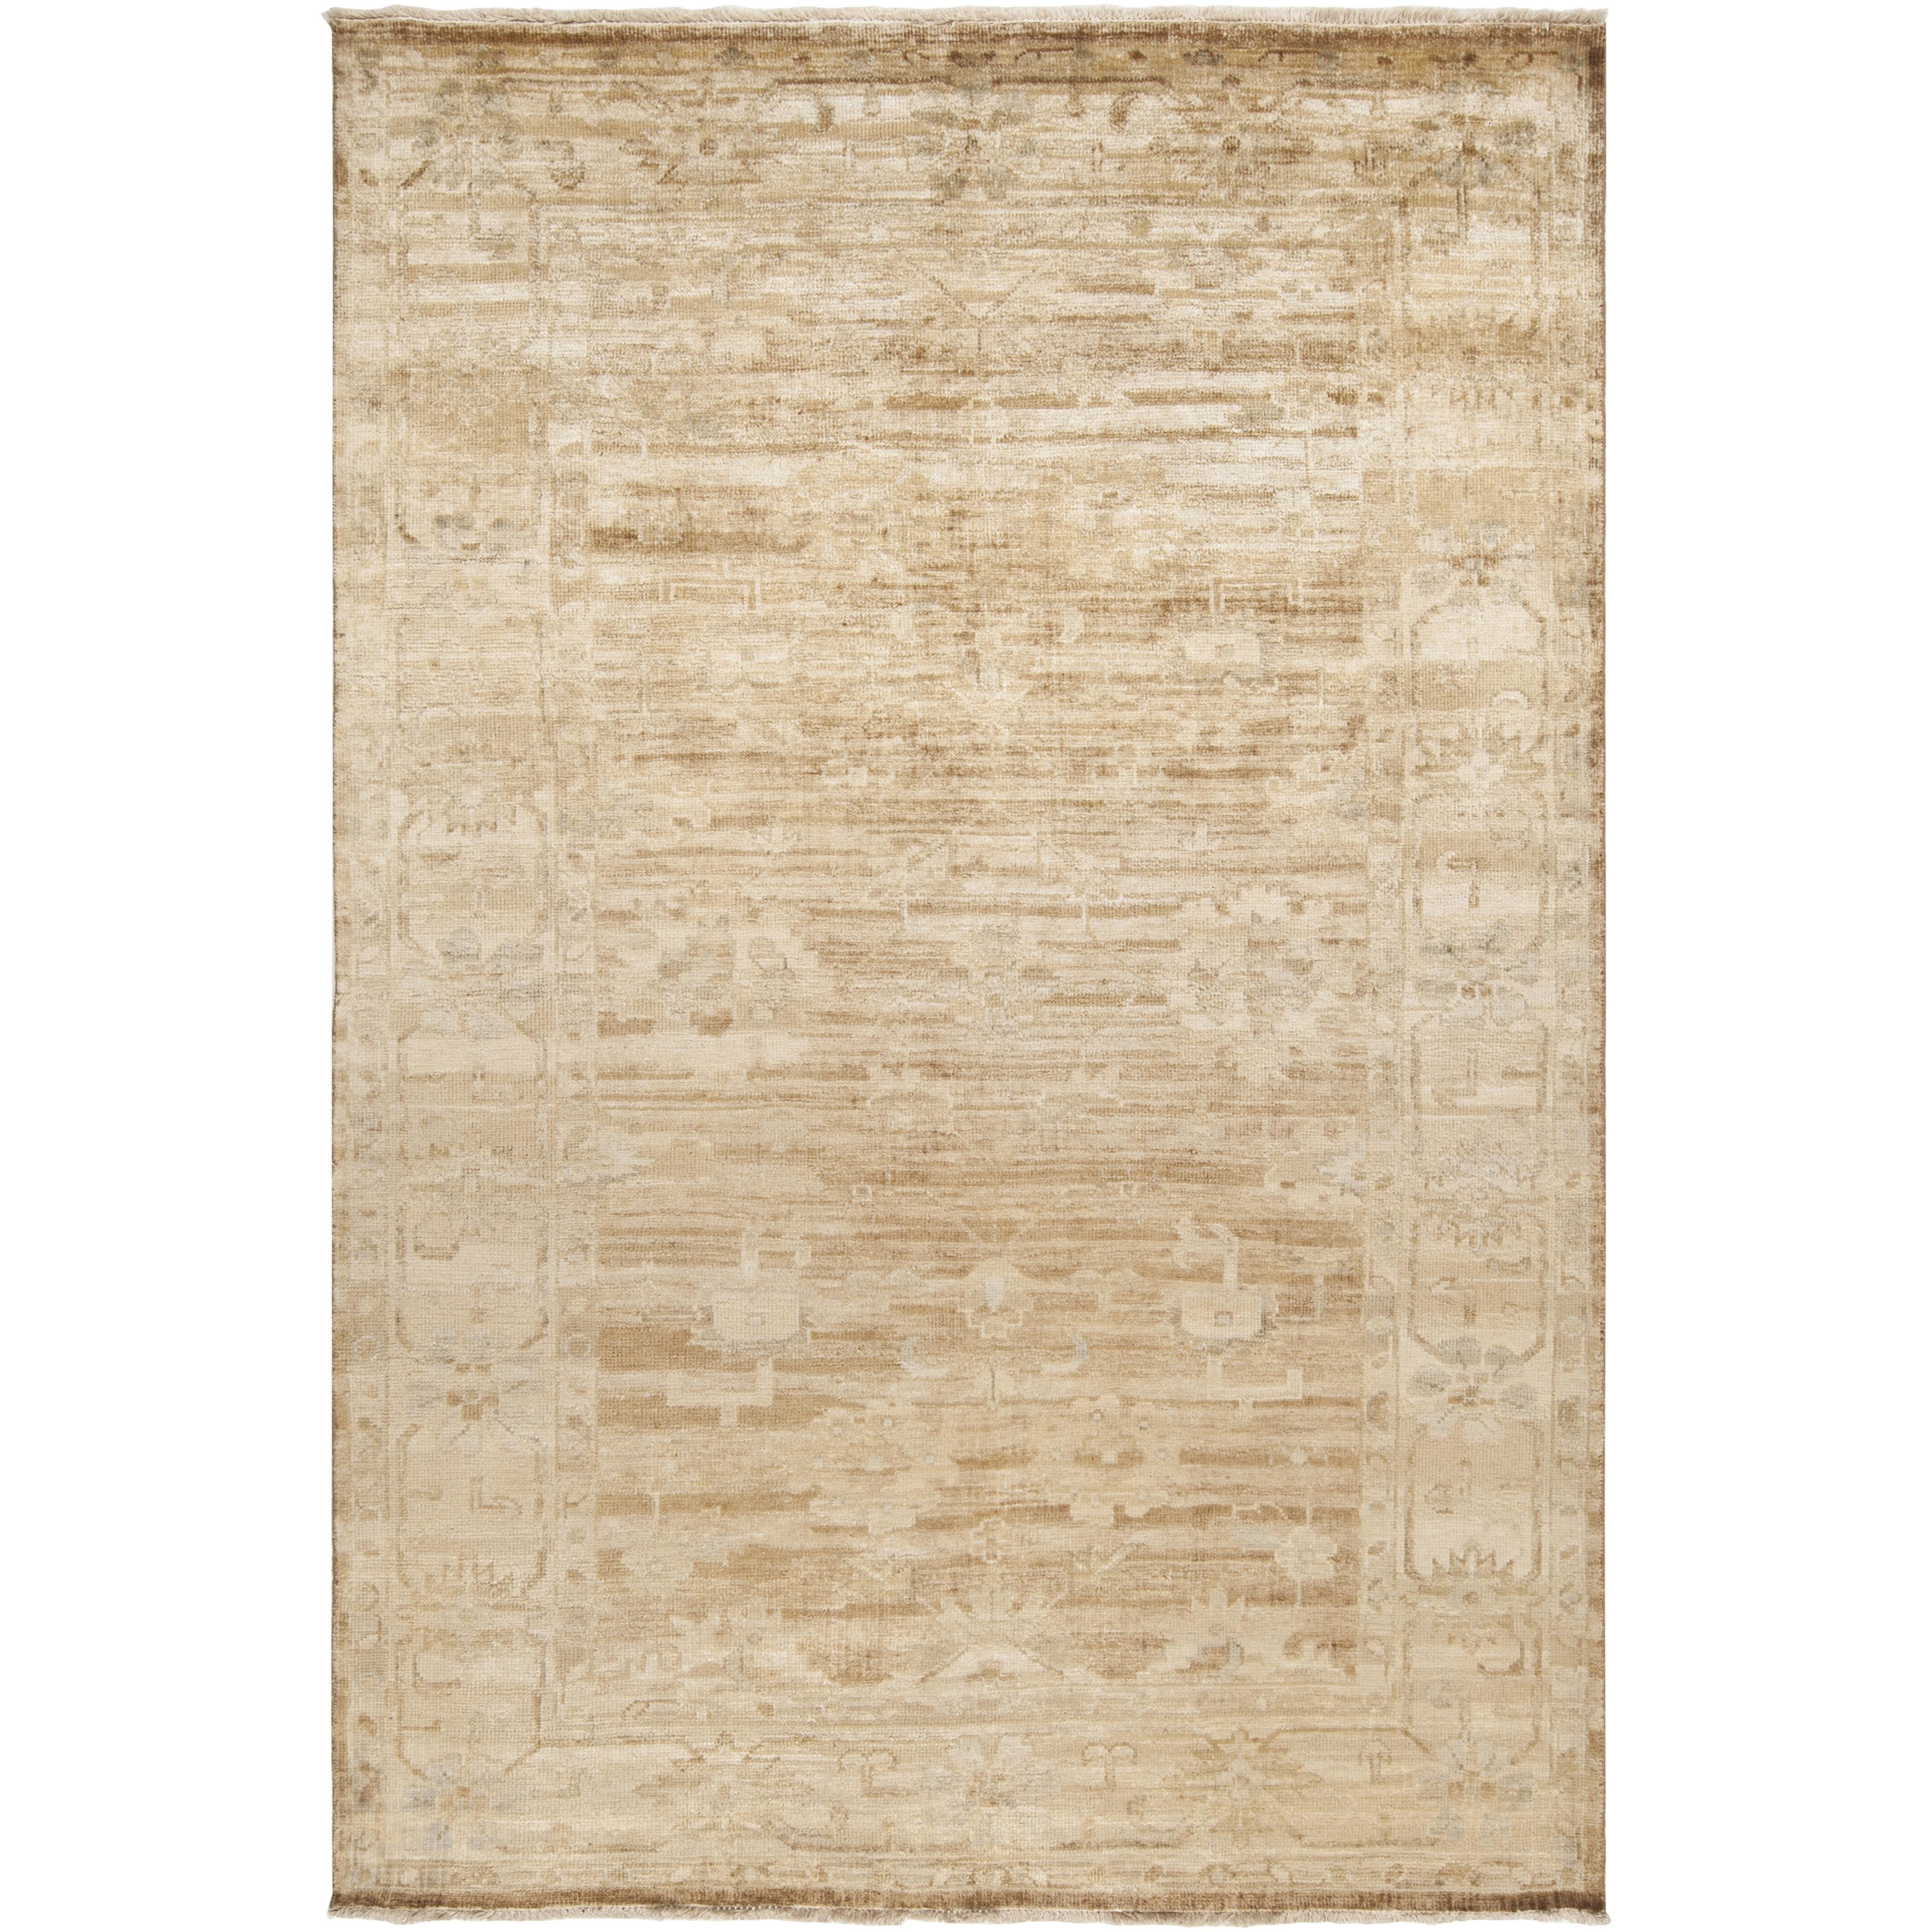 Surya Rugs Hillcrest 9' x 13' - Item Number: HIL9012-913